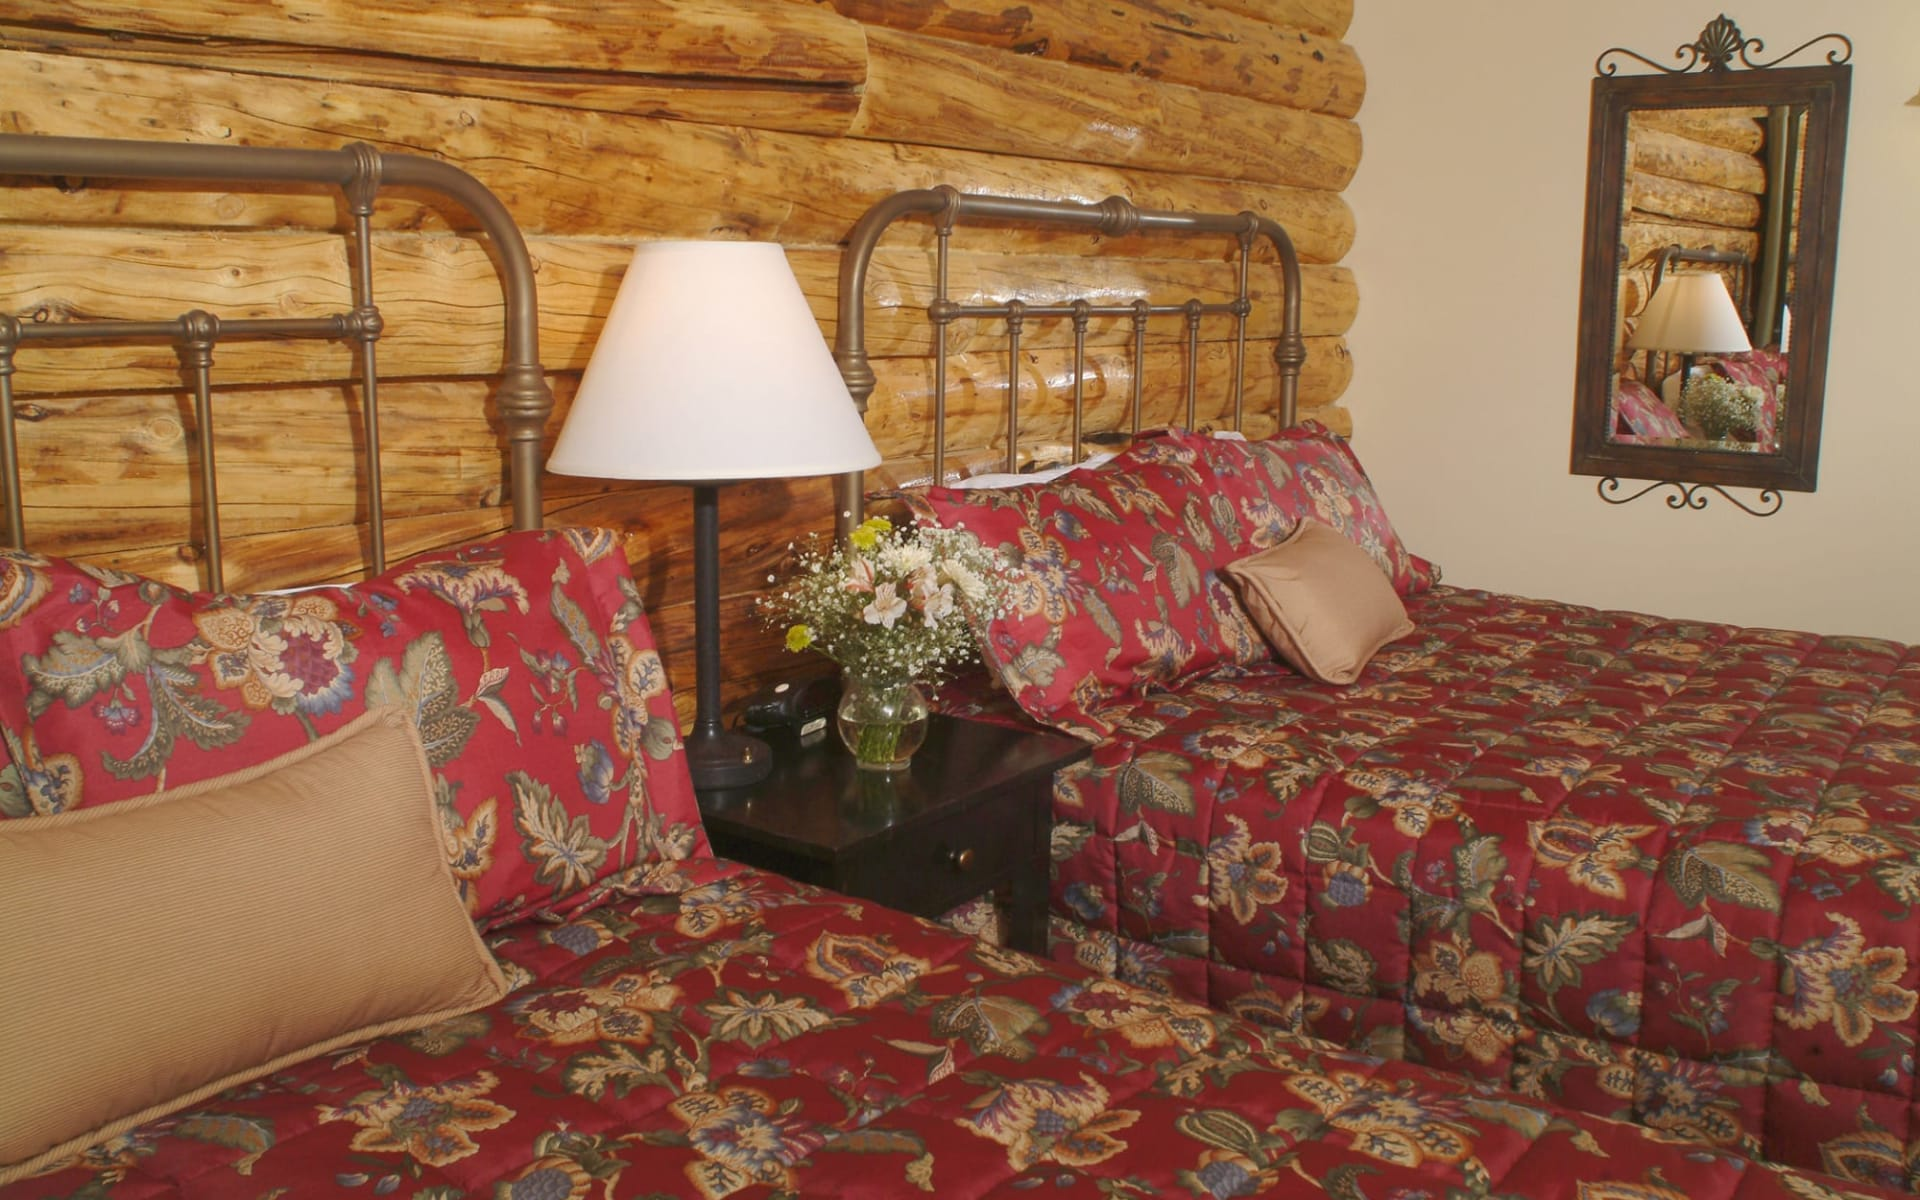 Pike's Waterfront Lodge in Fairbanks: pikes waterfront lodge cabin_022